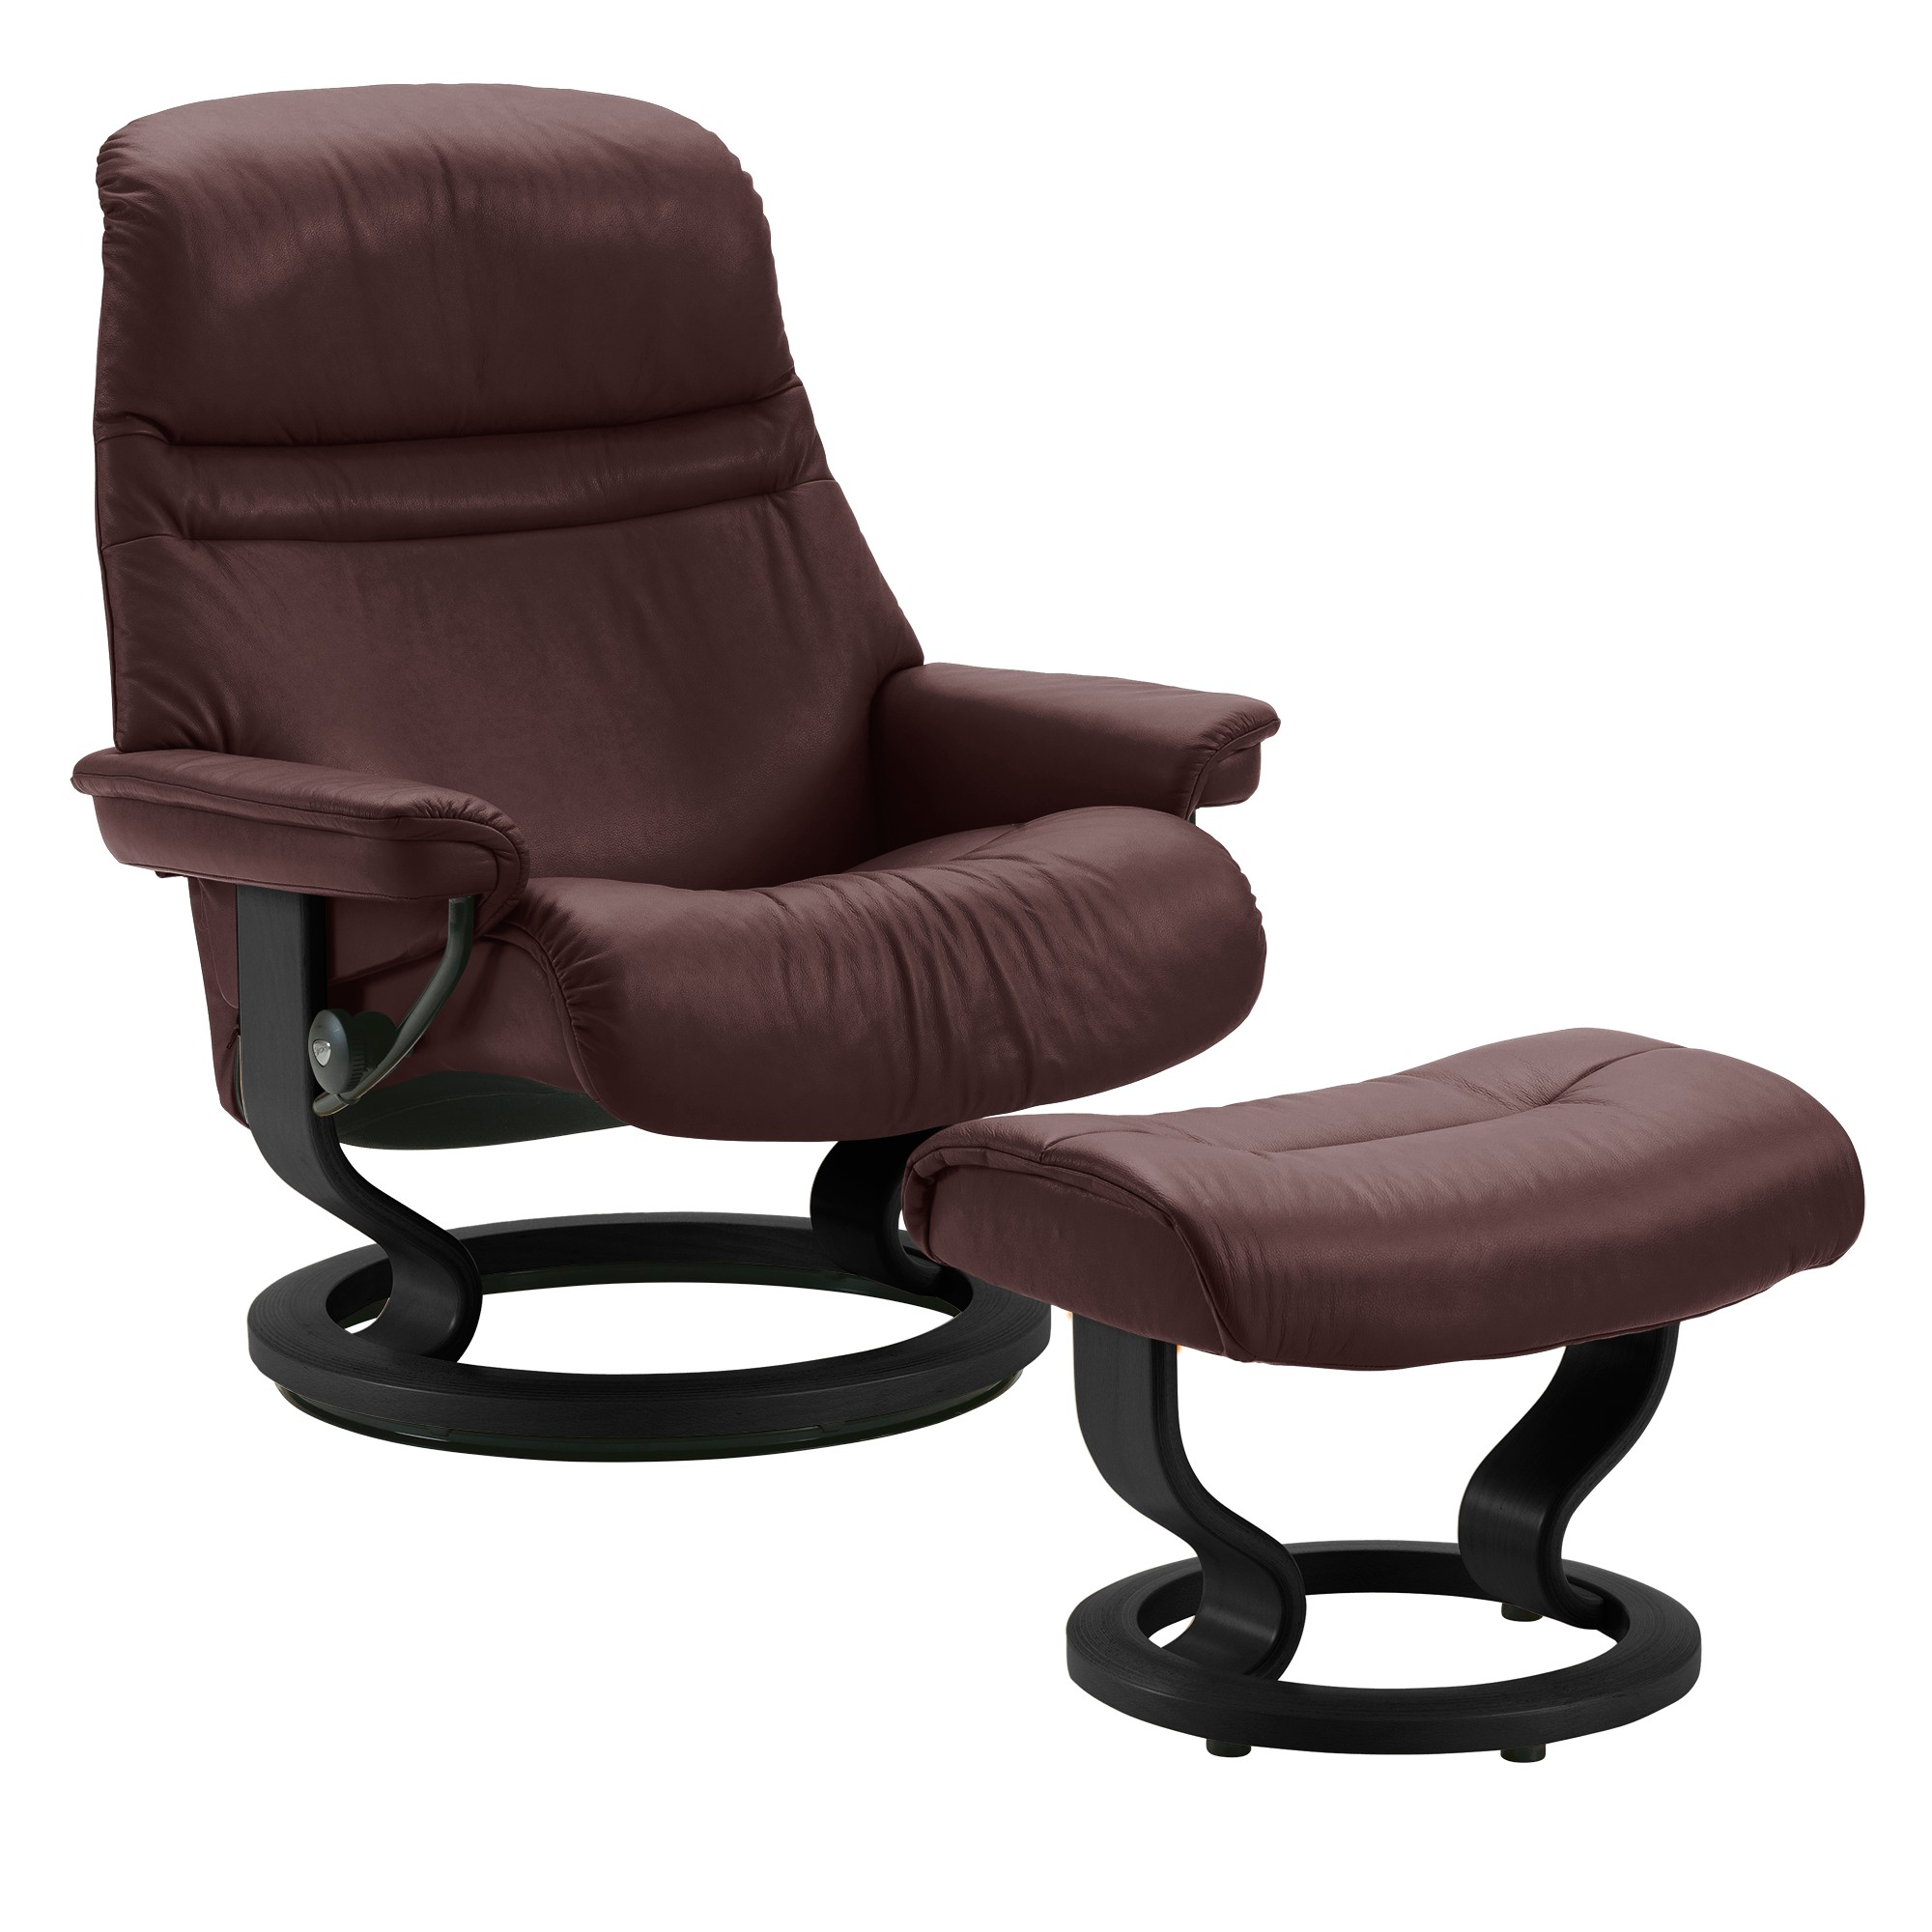 Stressless consul small chair and stool in batick leather - Picture Of Stressless Sunrise Chair Large By Ekornes